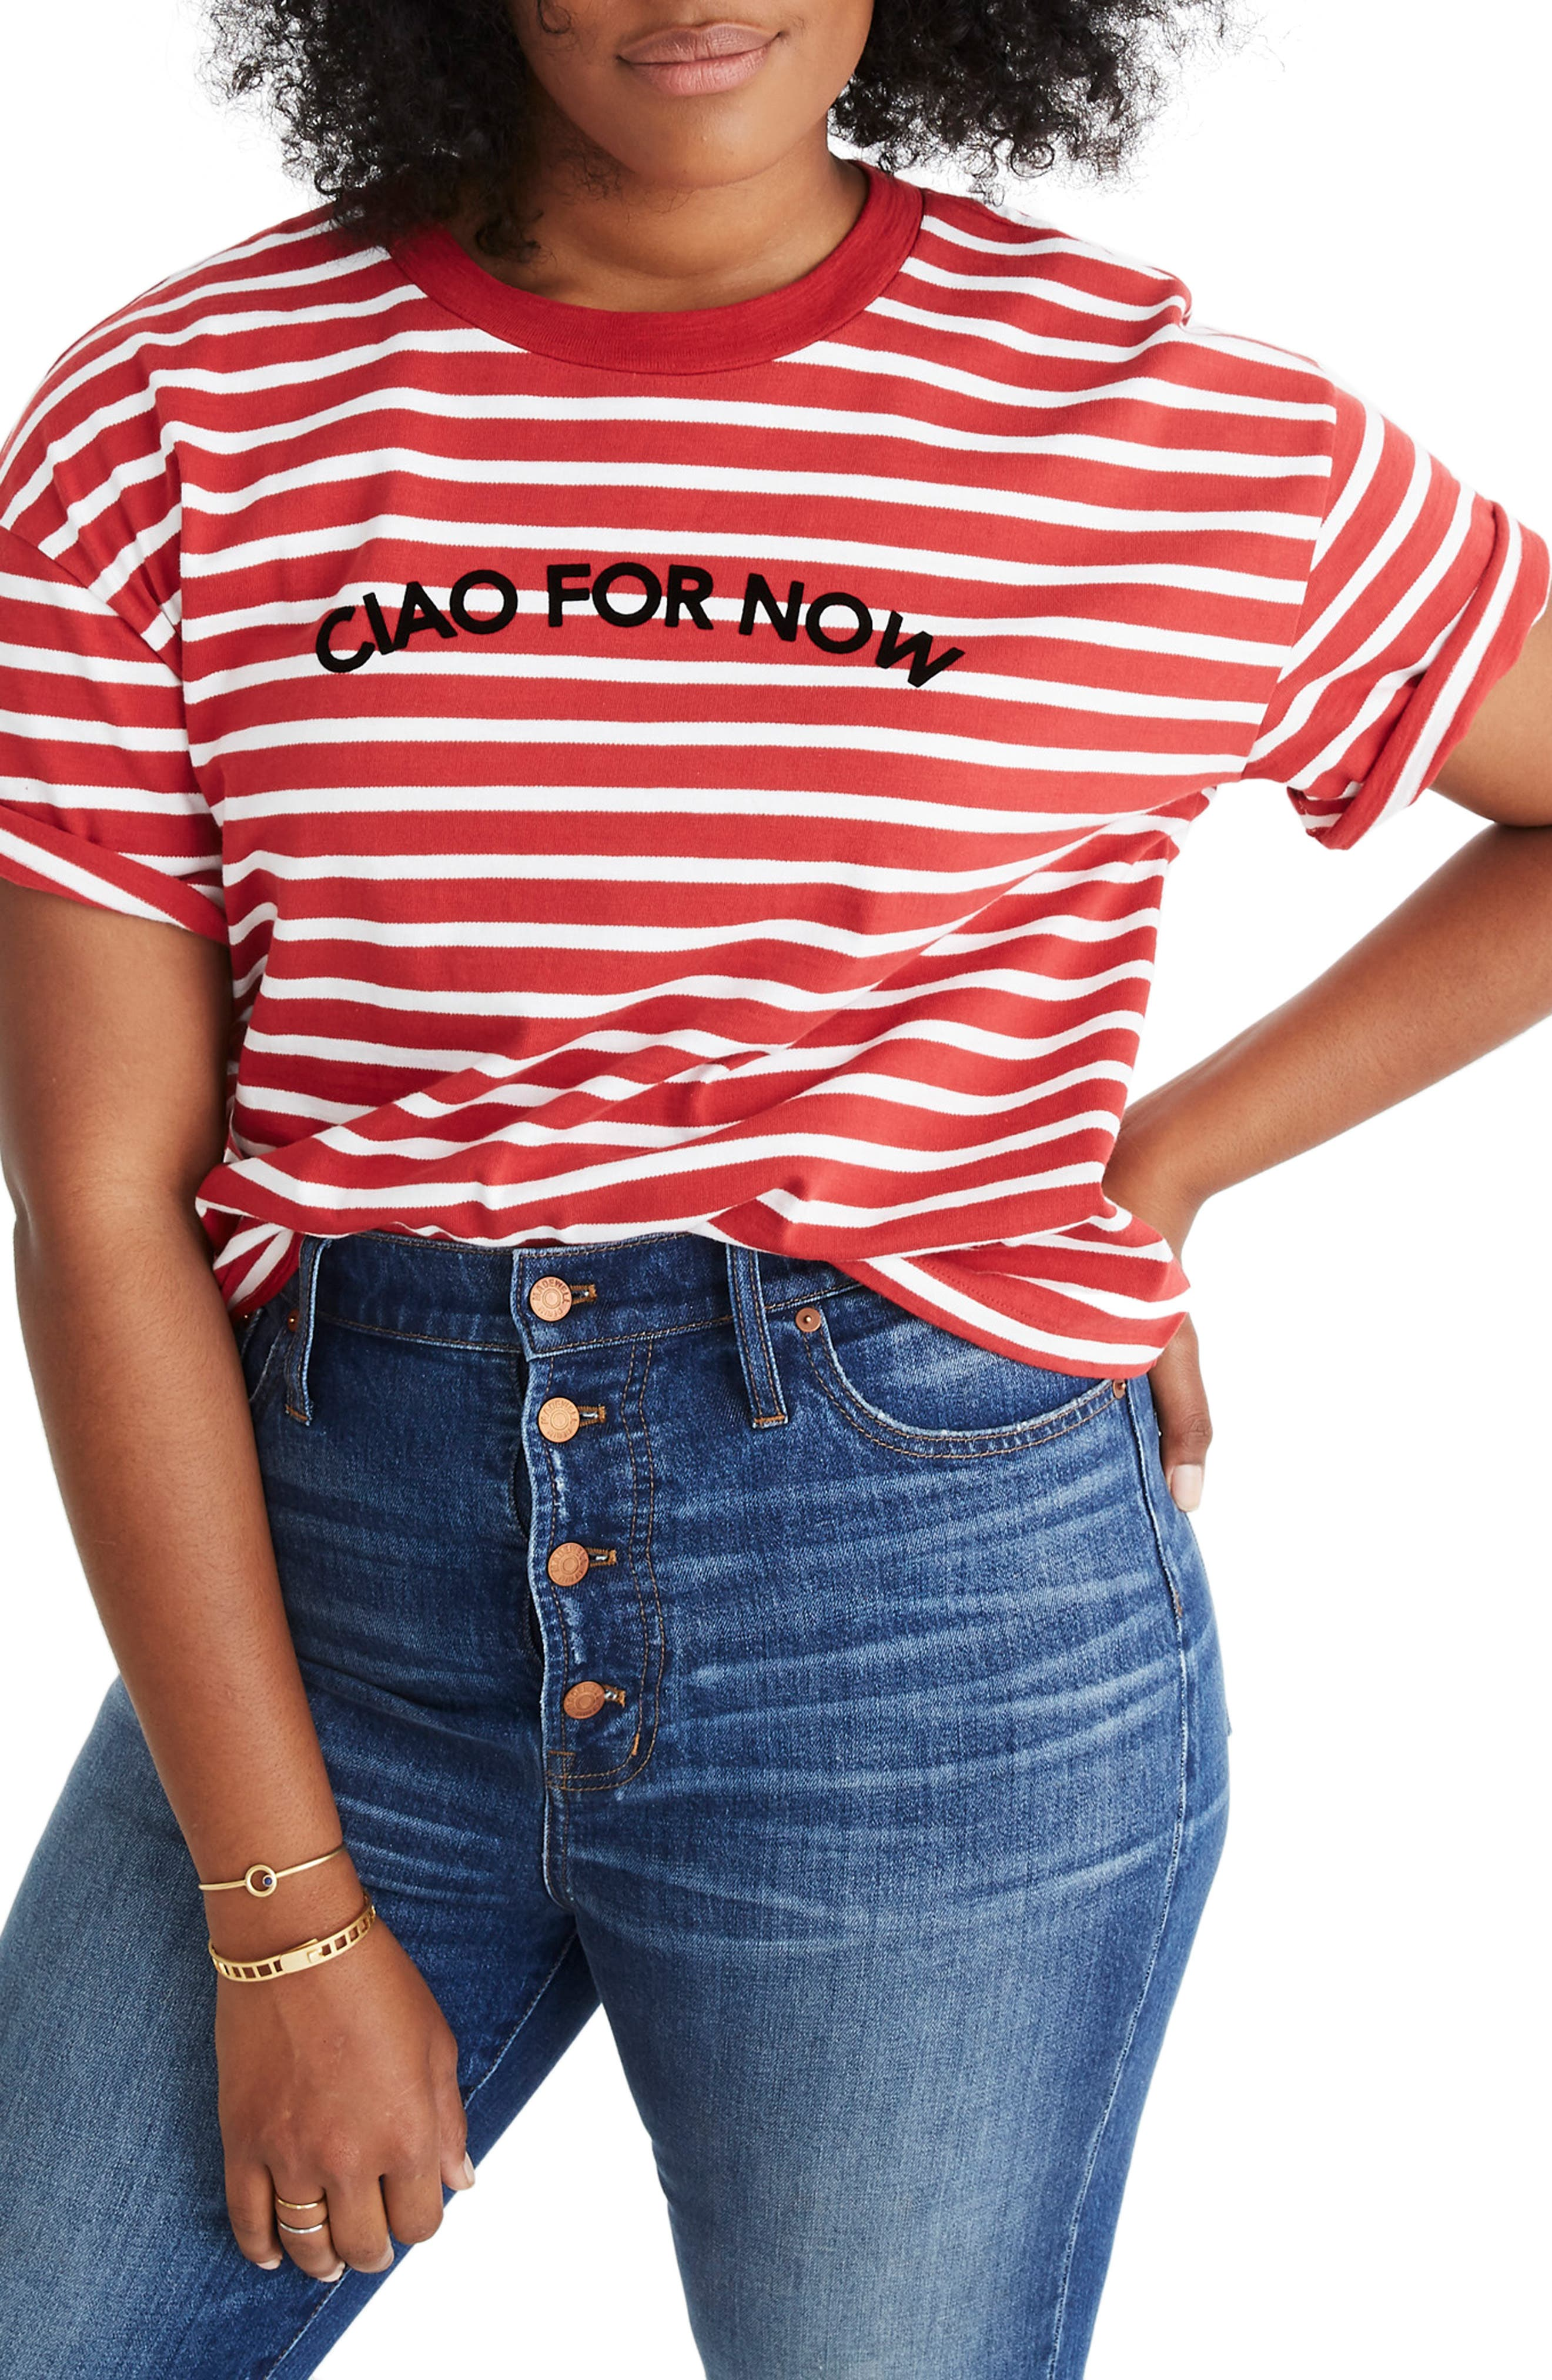 MADEWELL,                             Stripe Ciao for Now Tee,                             Alternate thumbnail 2, color,                             600